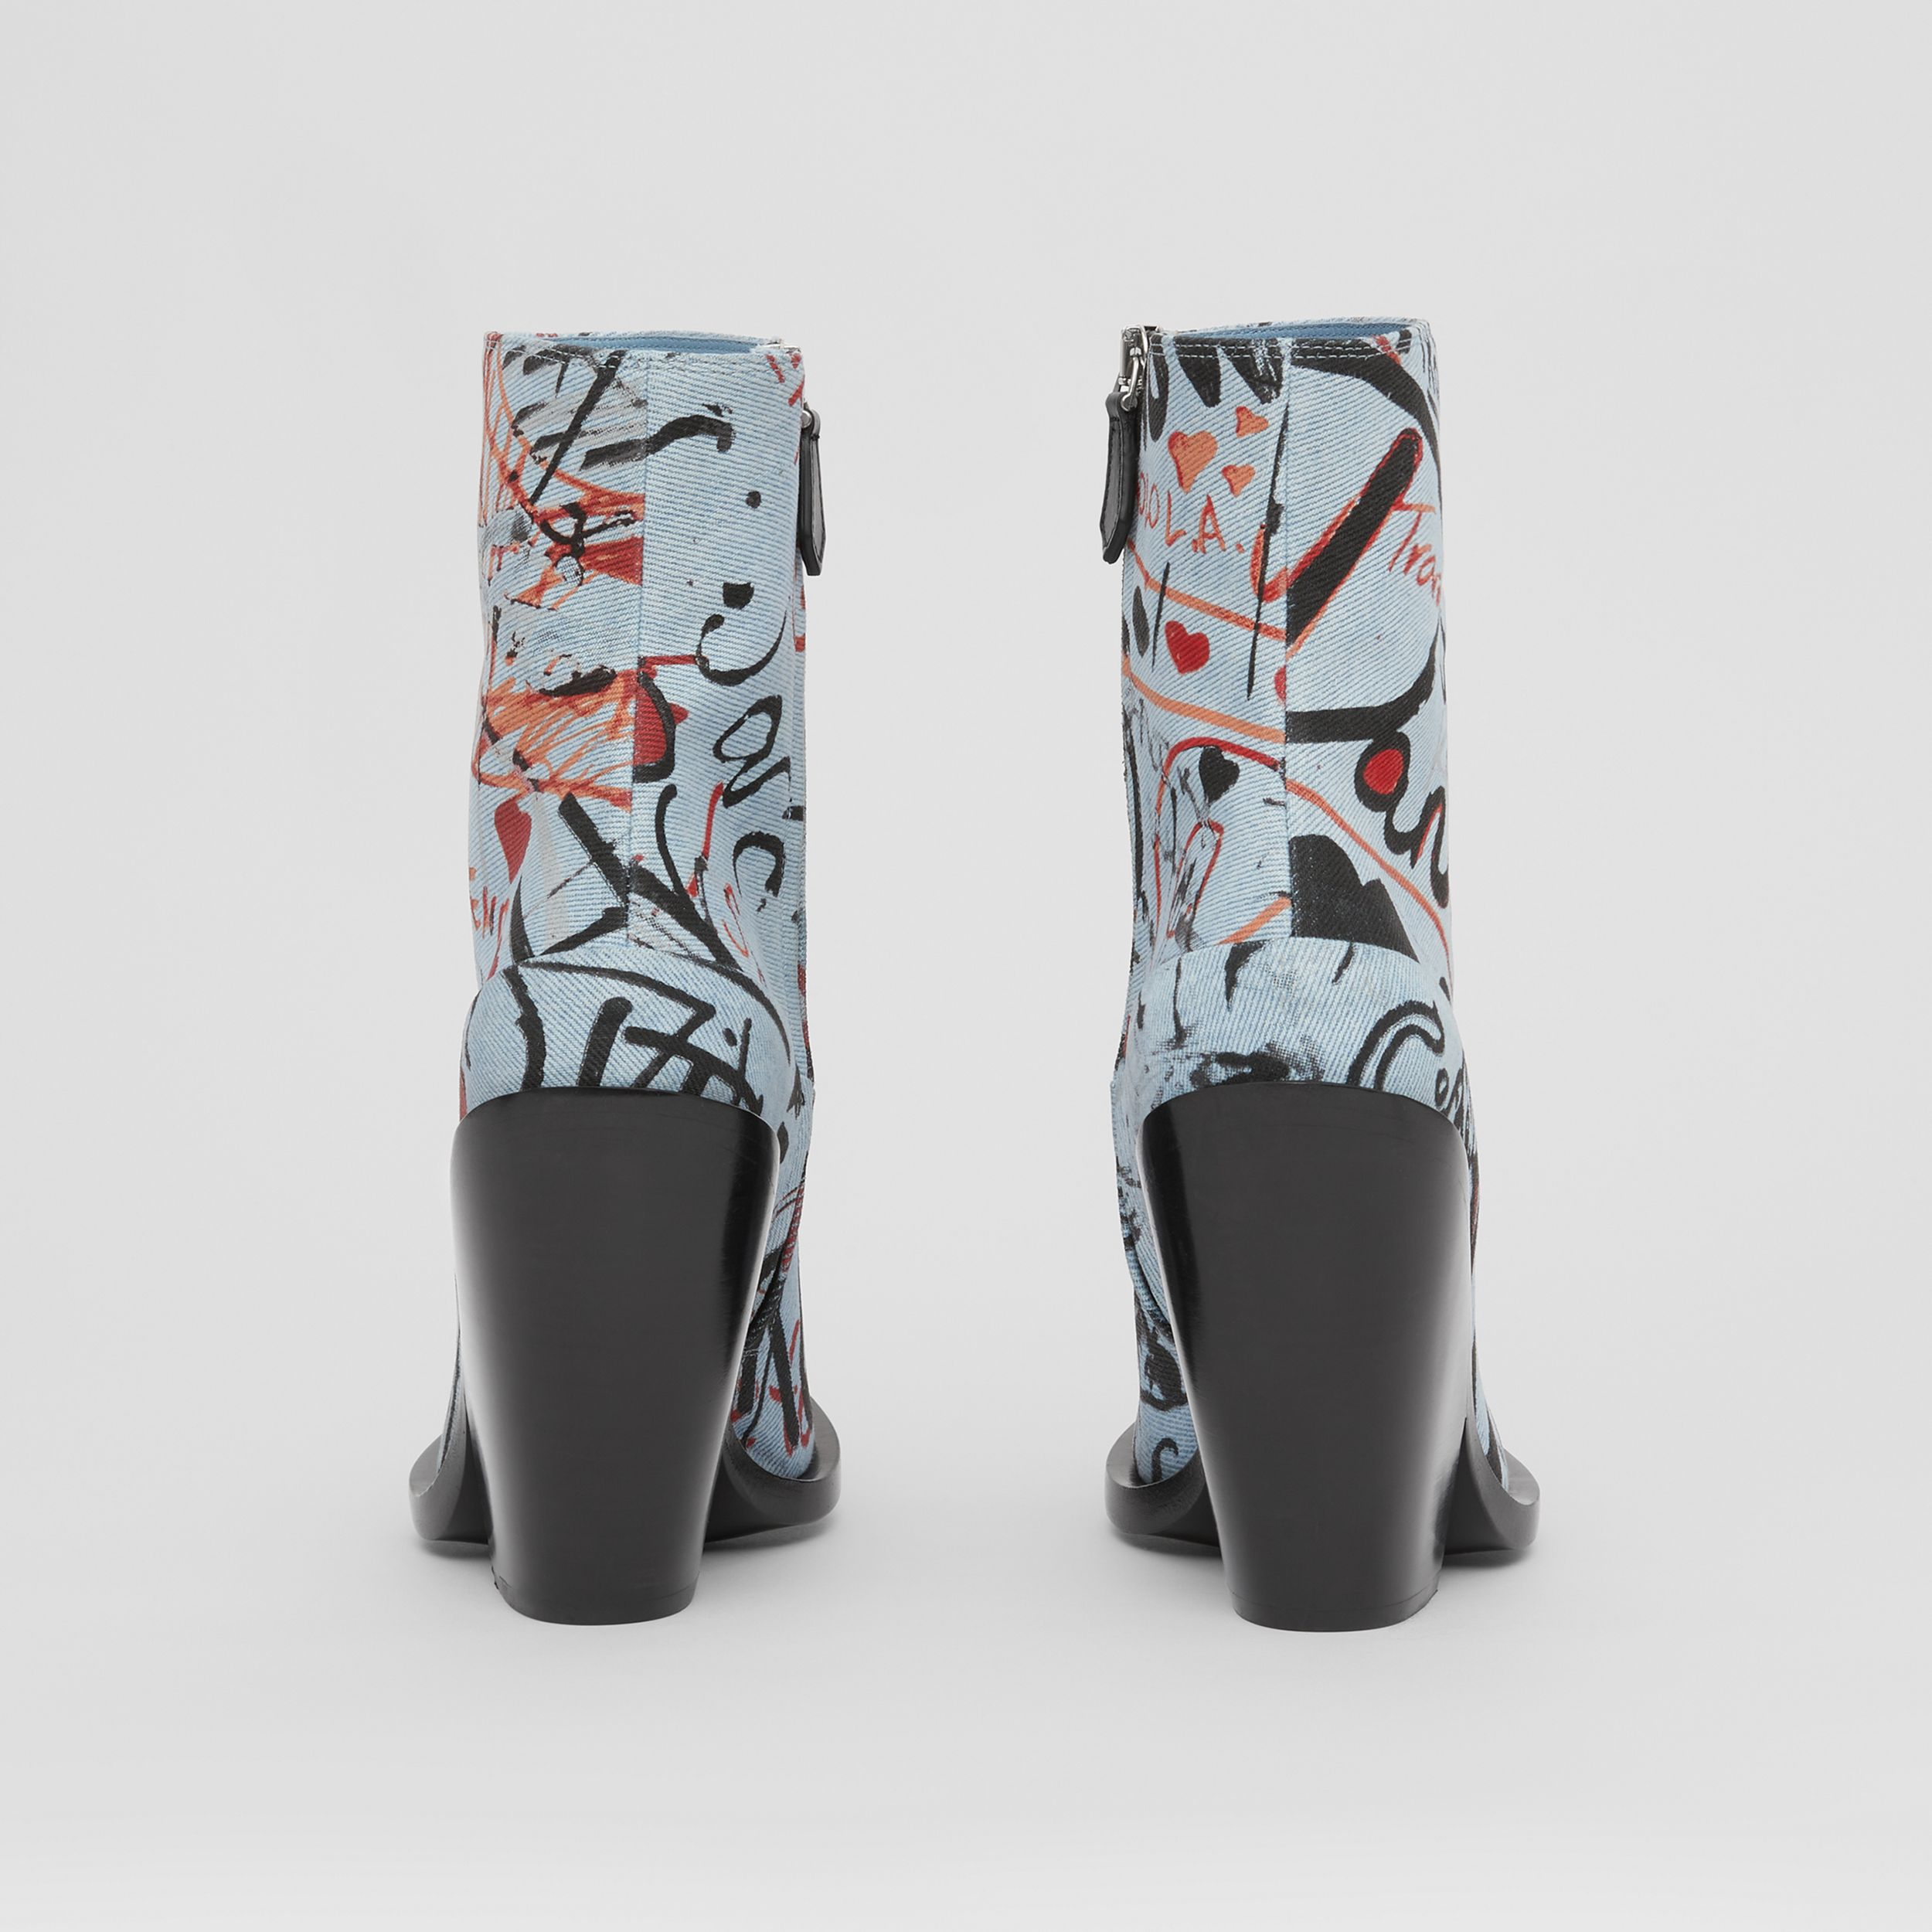 Graffiti Print Denim Block-heel Ankle Boots in Multicolour - Women | Burberry - 4